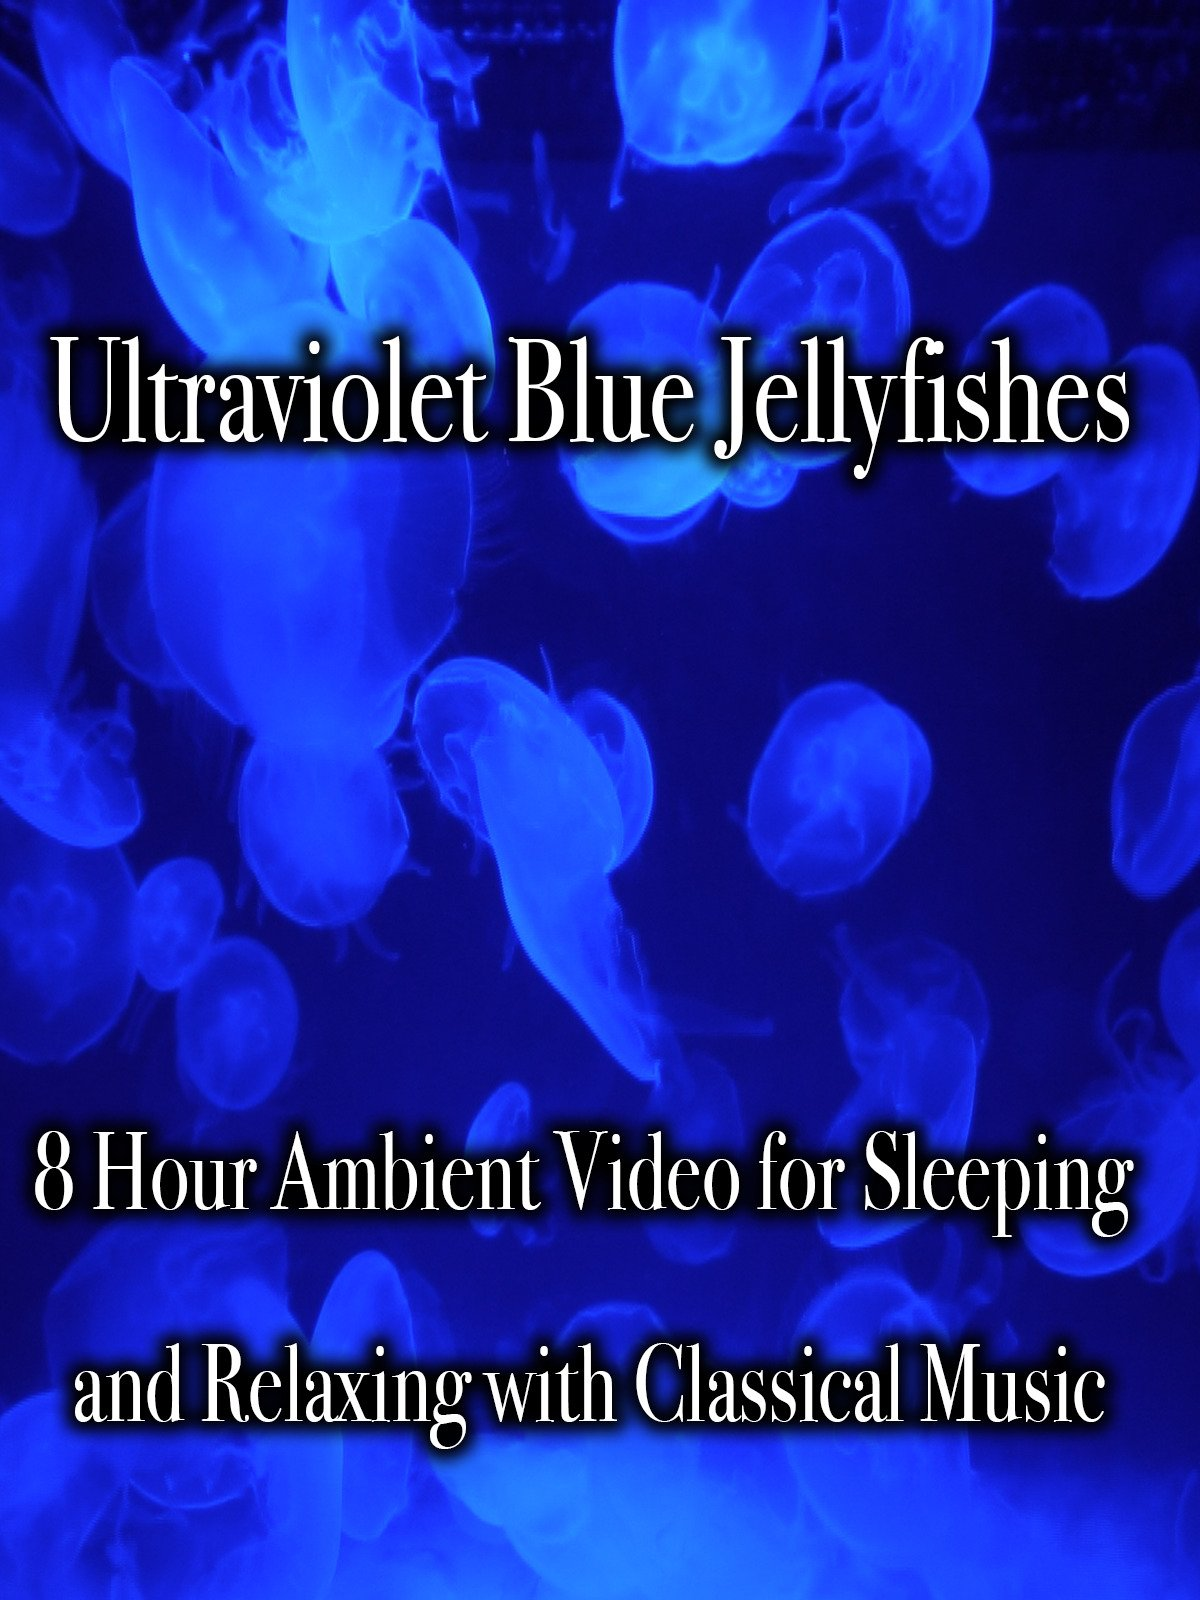 Ultraviolet Blue Jellyfishes 8 Hour Ambient Video for Sleeping and Relaxing with Classical Music